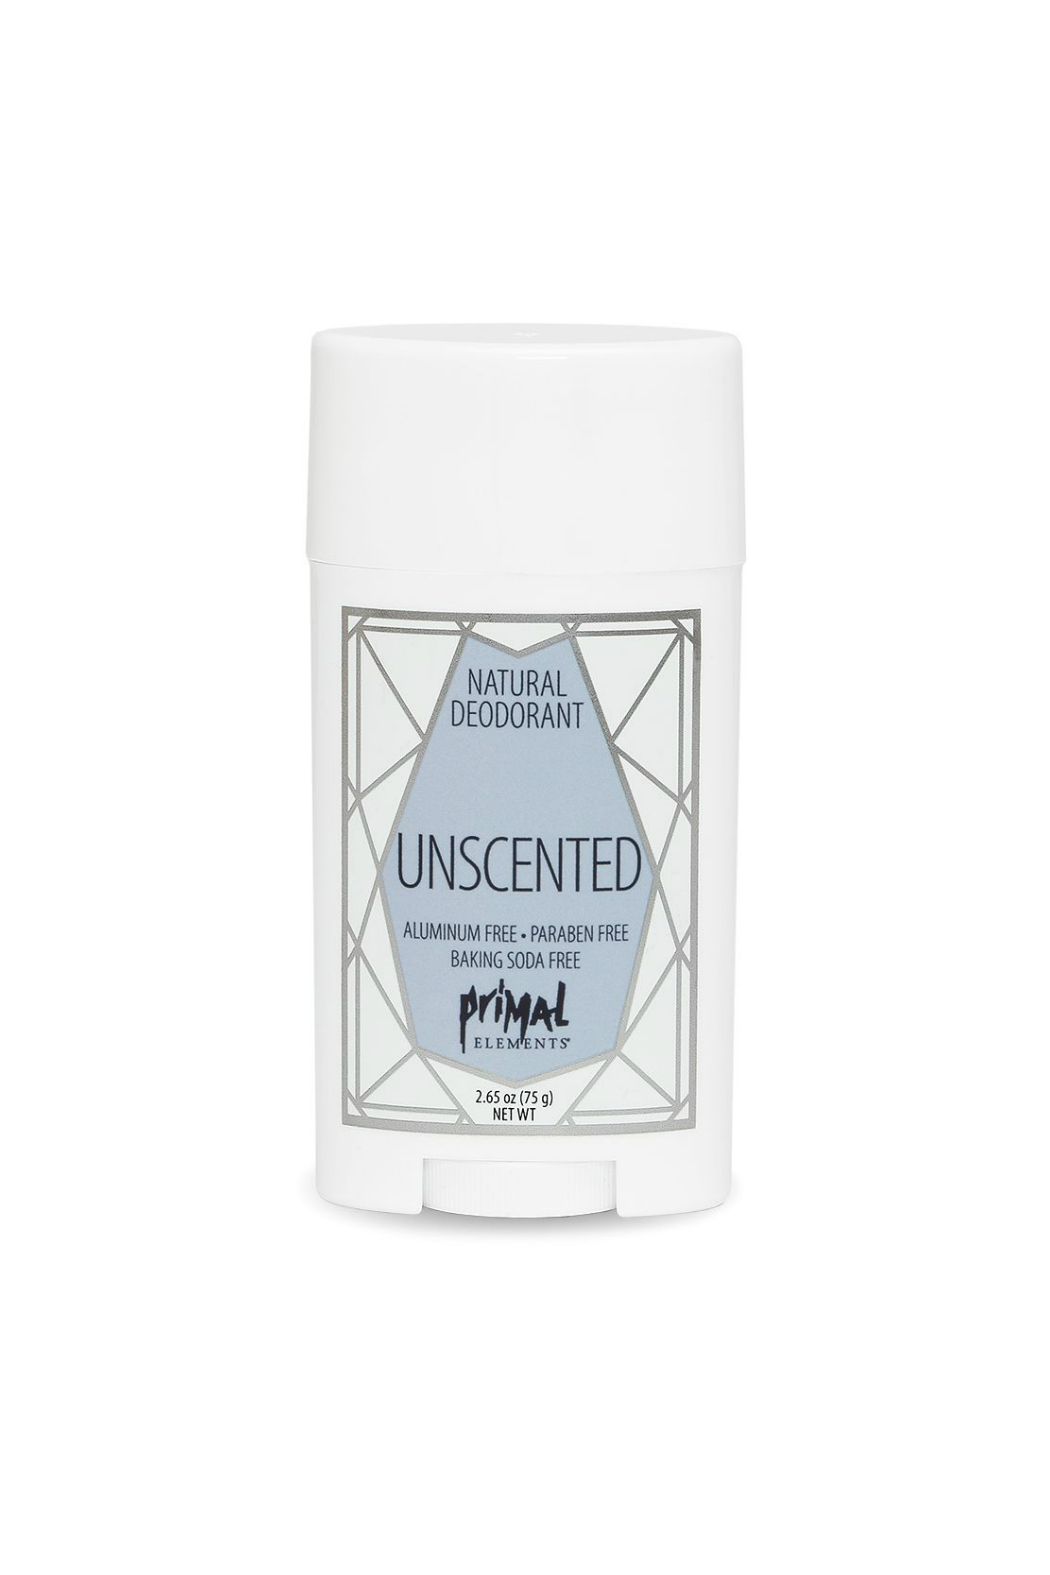 Primal Elements ALL NATURAL DEODORANT UNSCENTED - Main Image